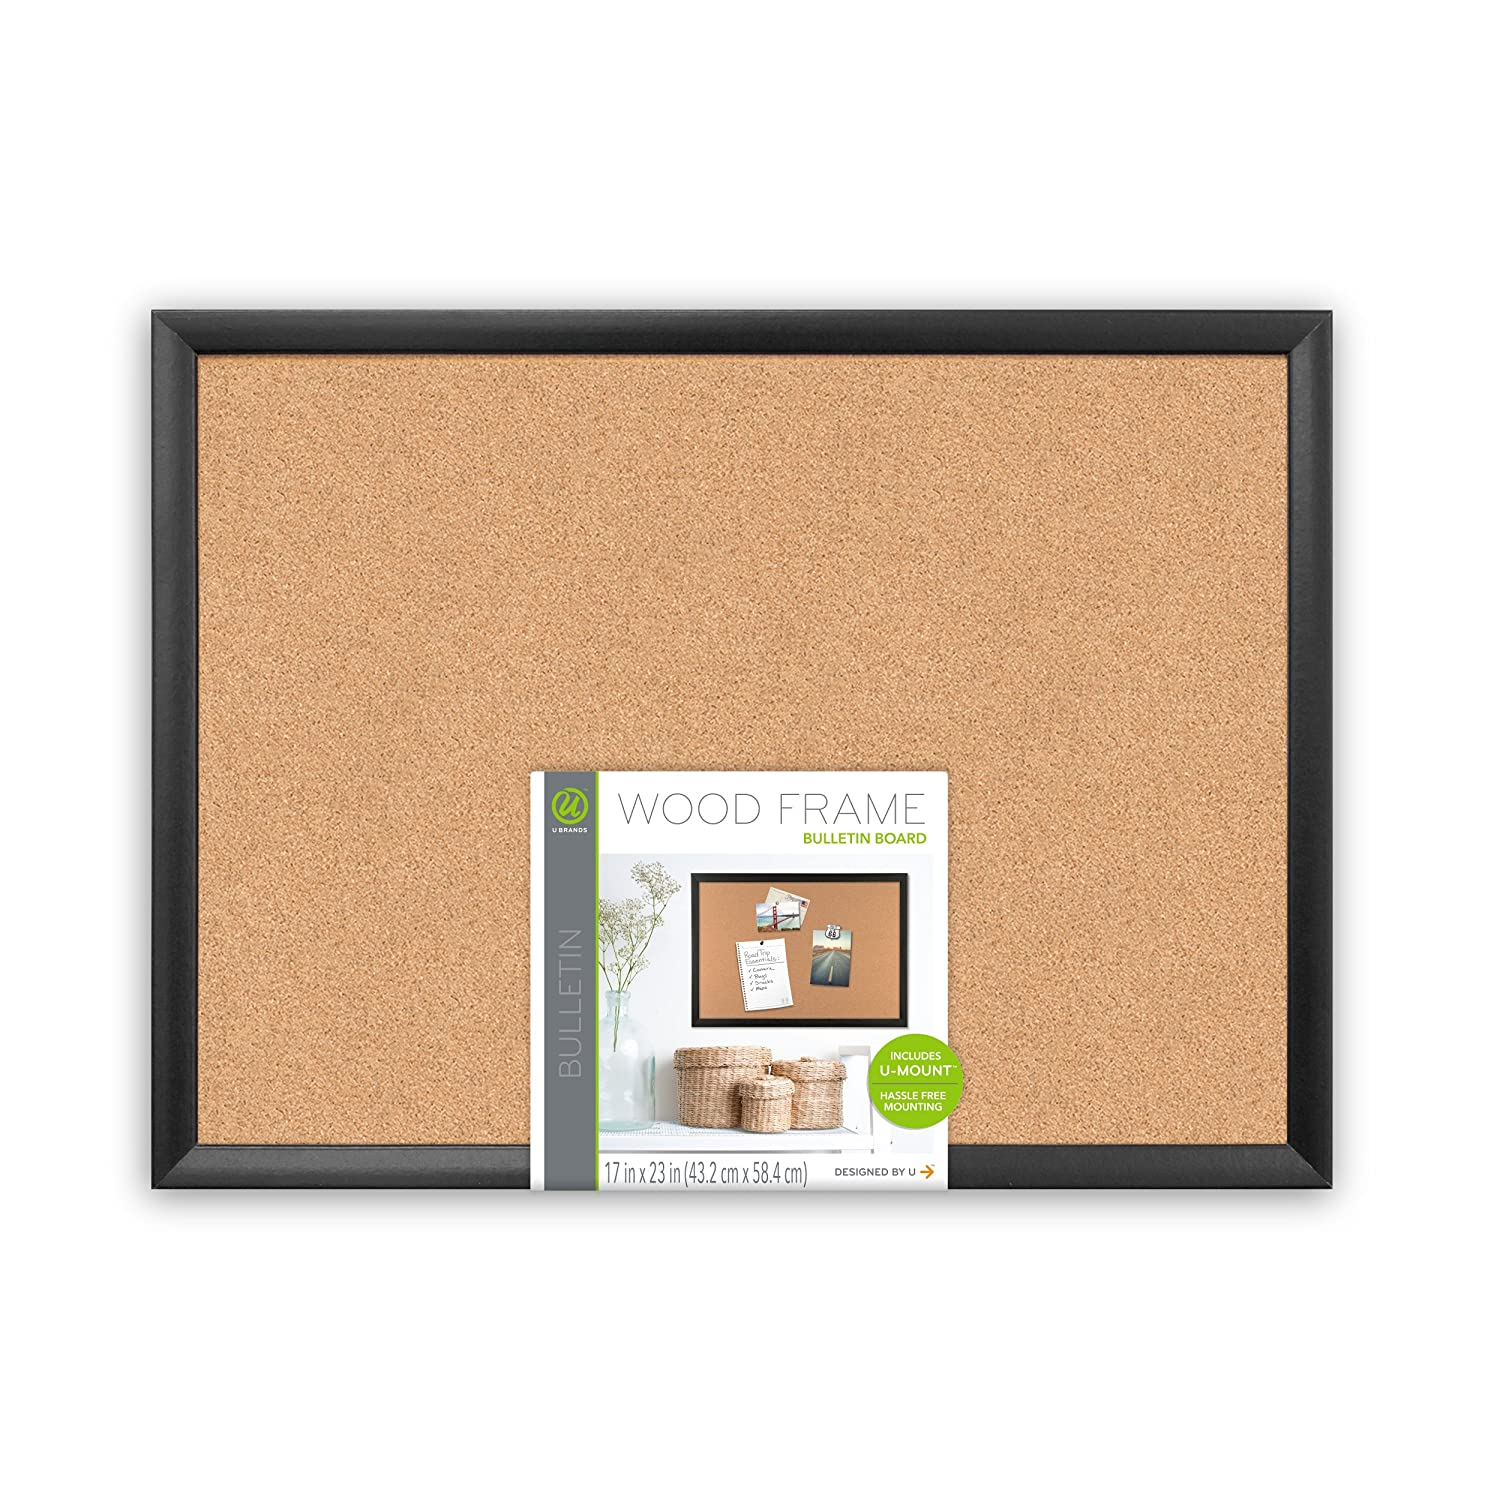 Amazon.com : U Brands Cork Bulletin Board, 23 x 17 Inches, Black Wood Frame  : Office Products